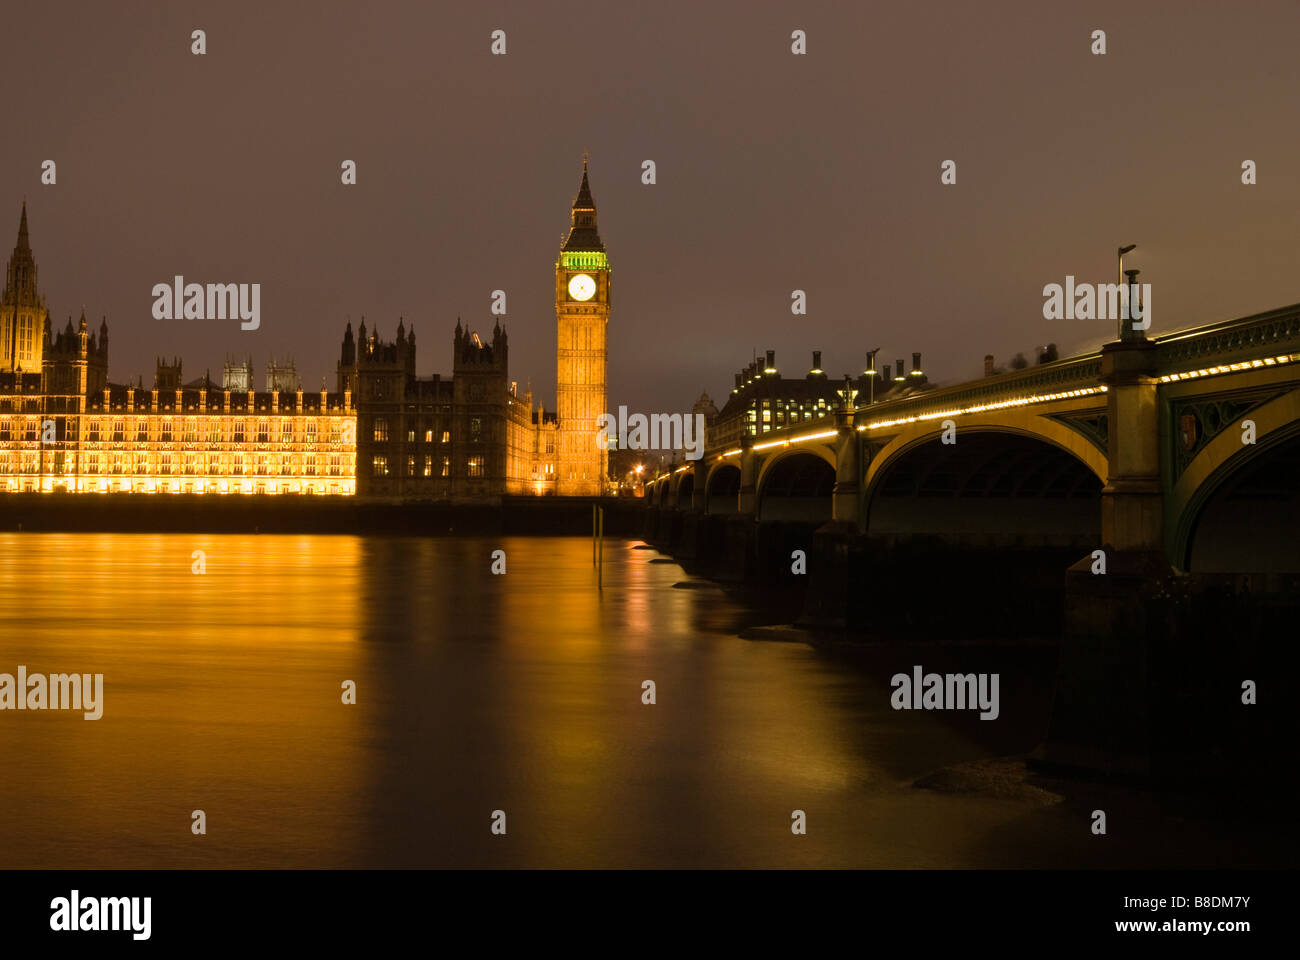 Houses of parliament london - Stock Image